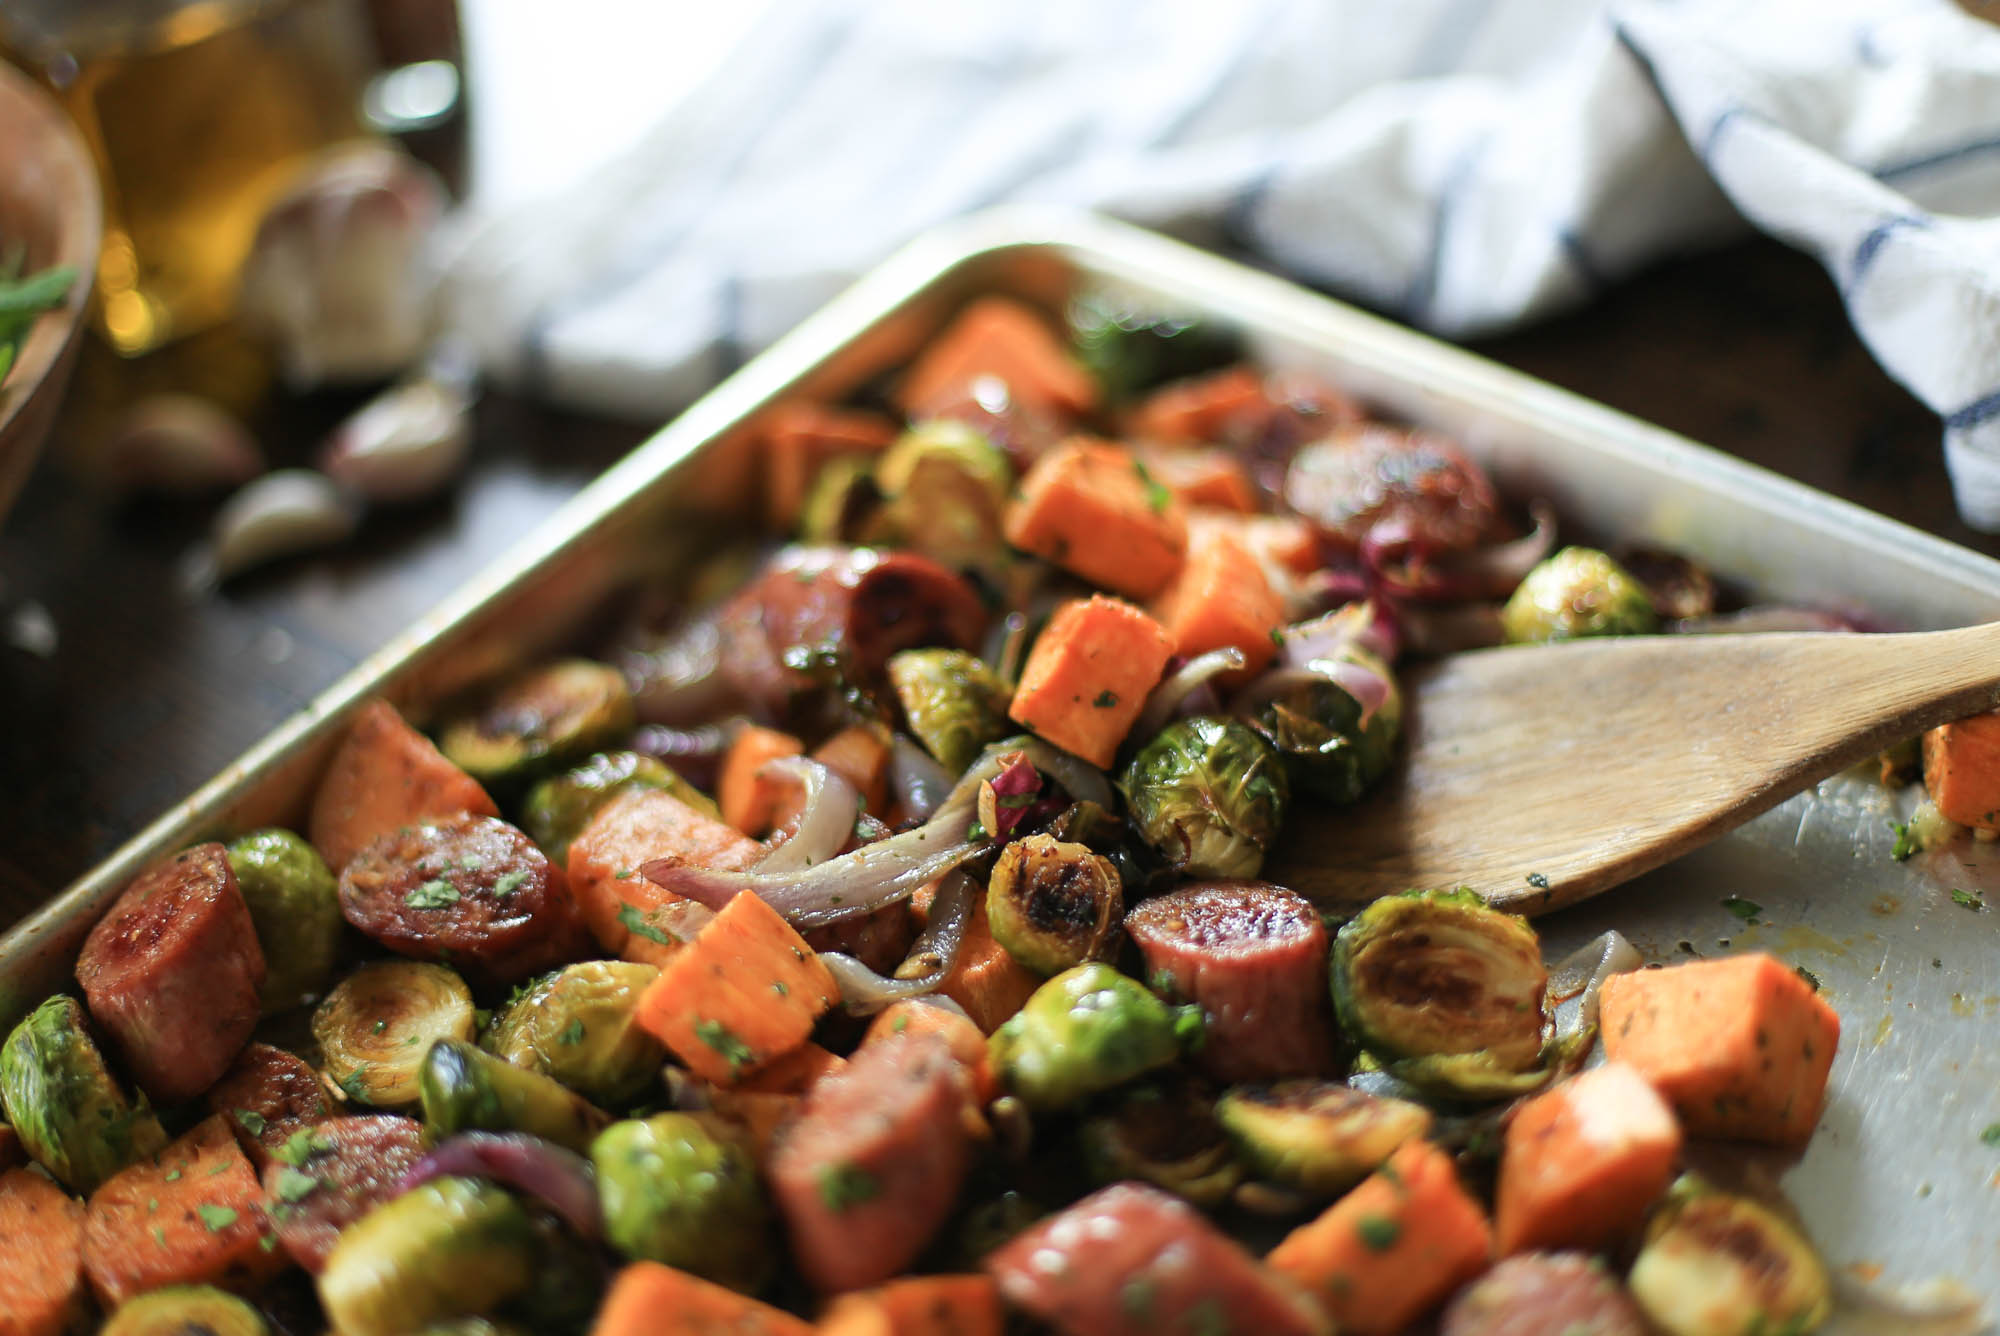 Pan-Roasted Sausage and Veggies